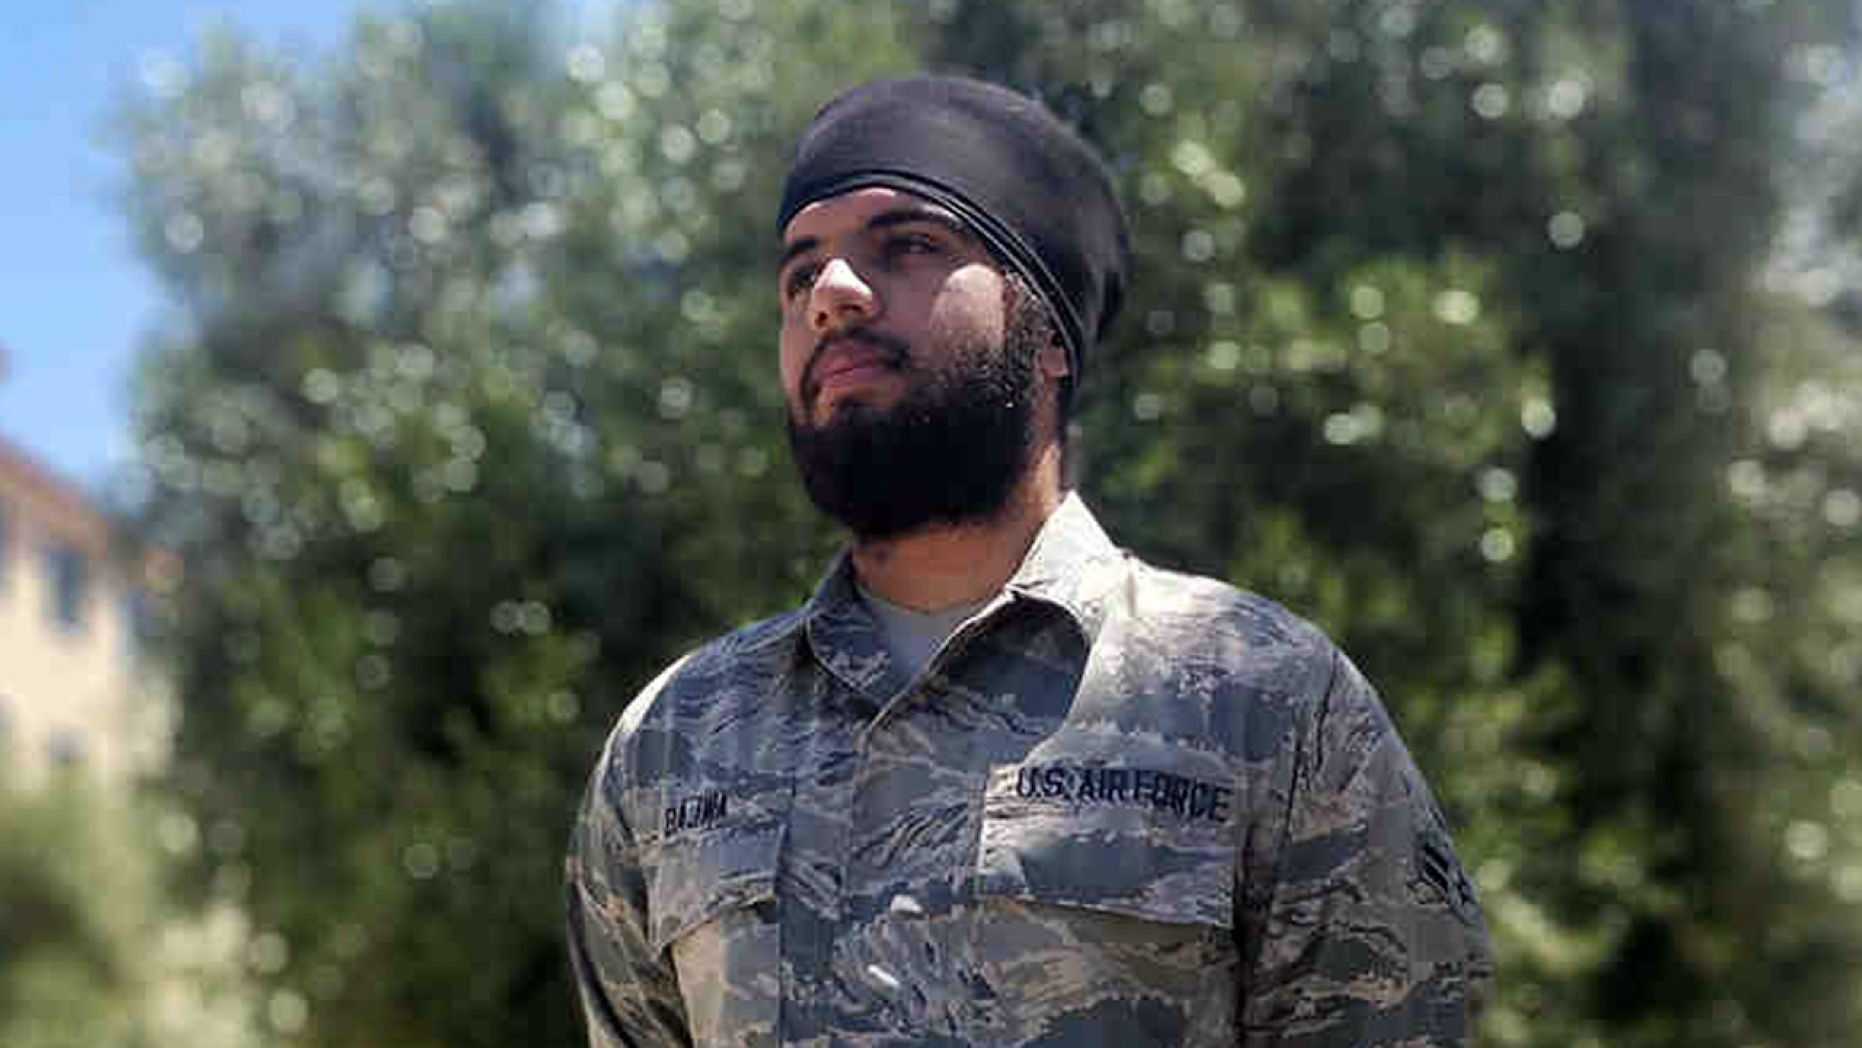 Air Force to allow uniformed members to wear turbans, hijabs, beards in new dress code update, officials say